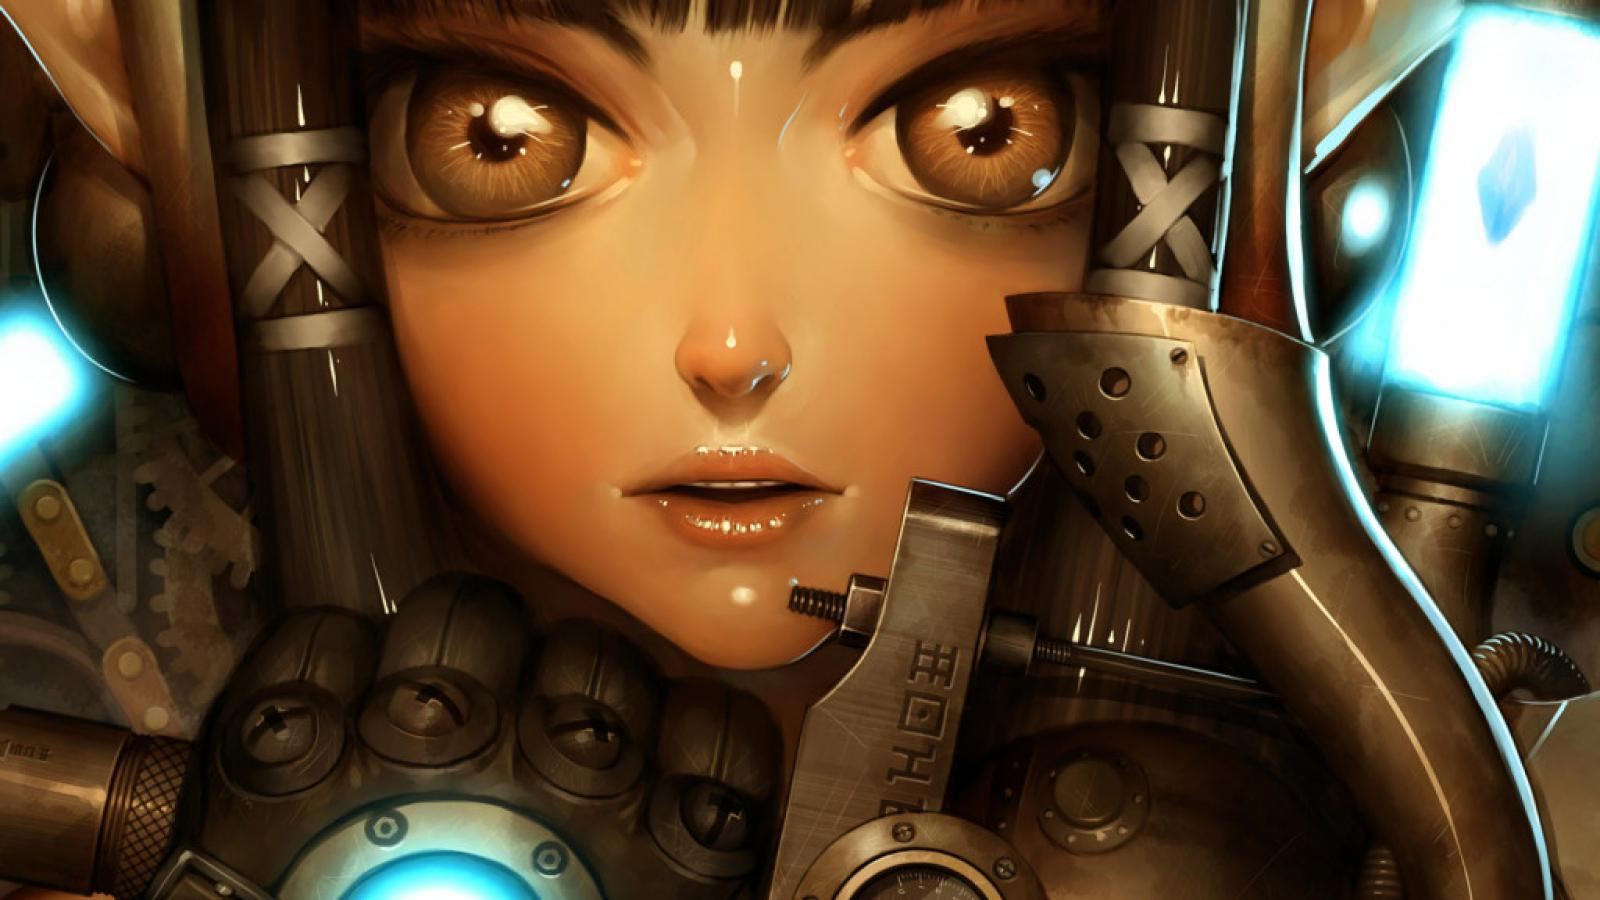 Steampunk girl   152634   High Quality and Resolution Wallpapers on 1600x900